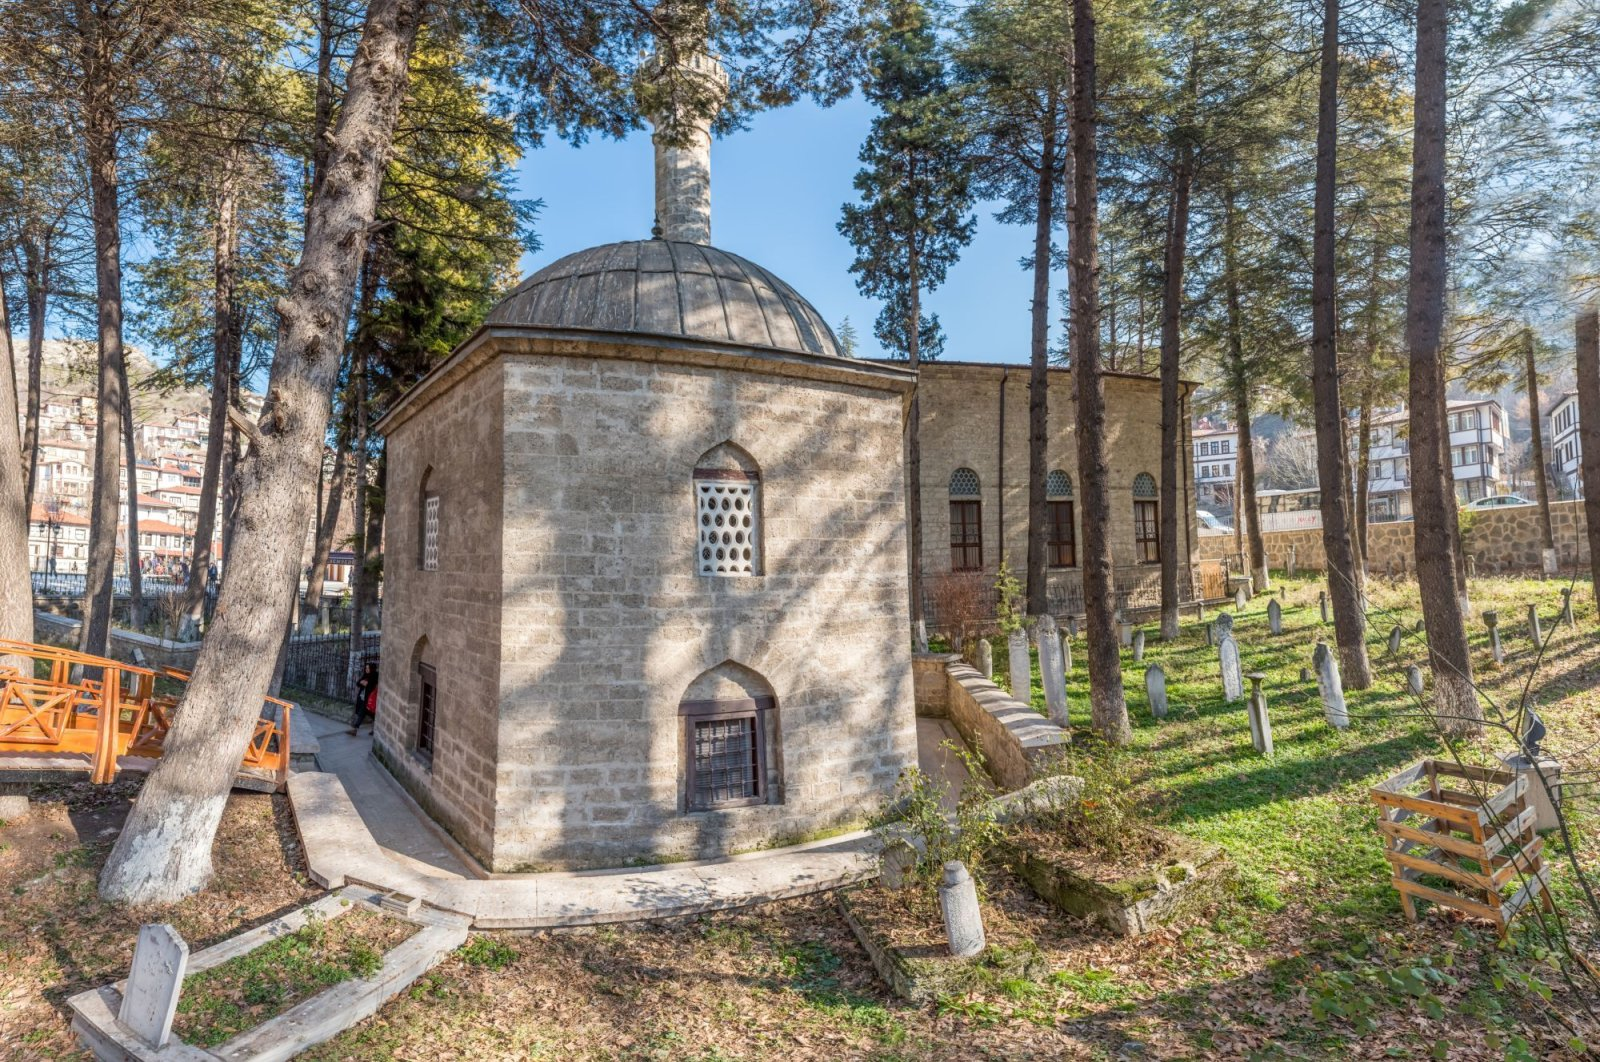 Akshamsaddin's tomb, which is frequently visited by his admirers, is located in the Göynük district of western Bolu province. (iStock Photo)